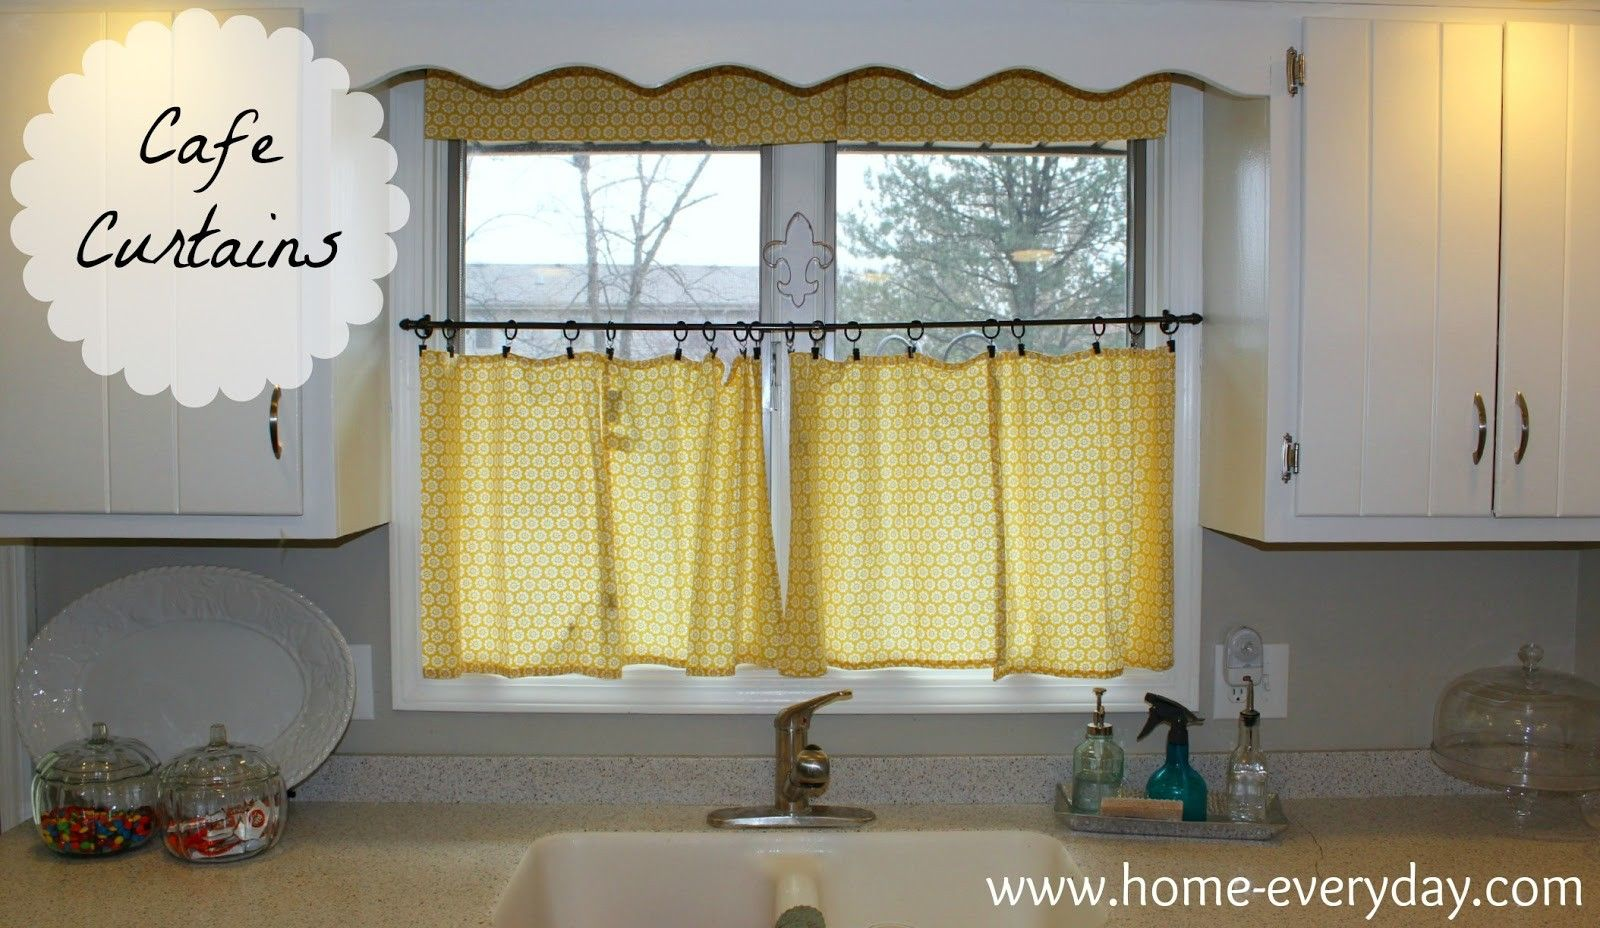 Cafe curtains for bedroom found some cute yellow cloth napkins fresh